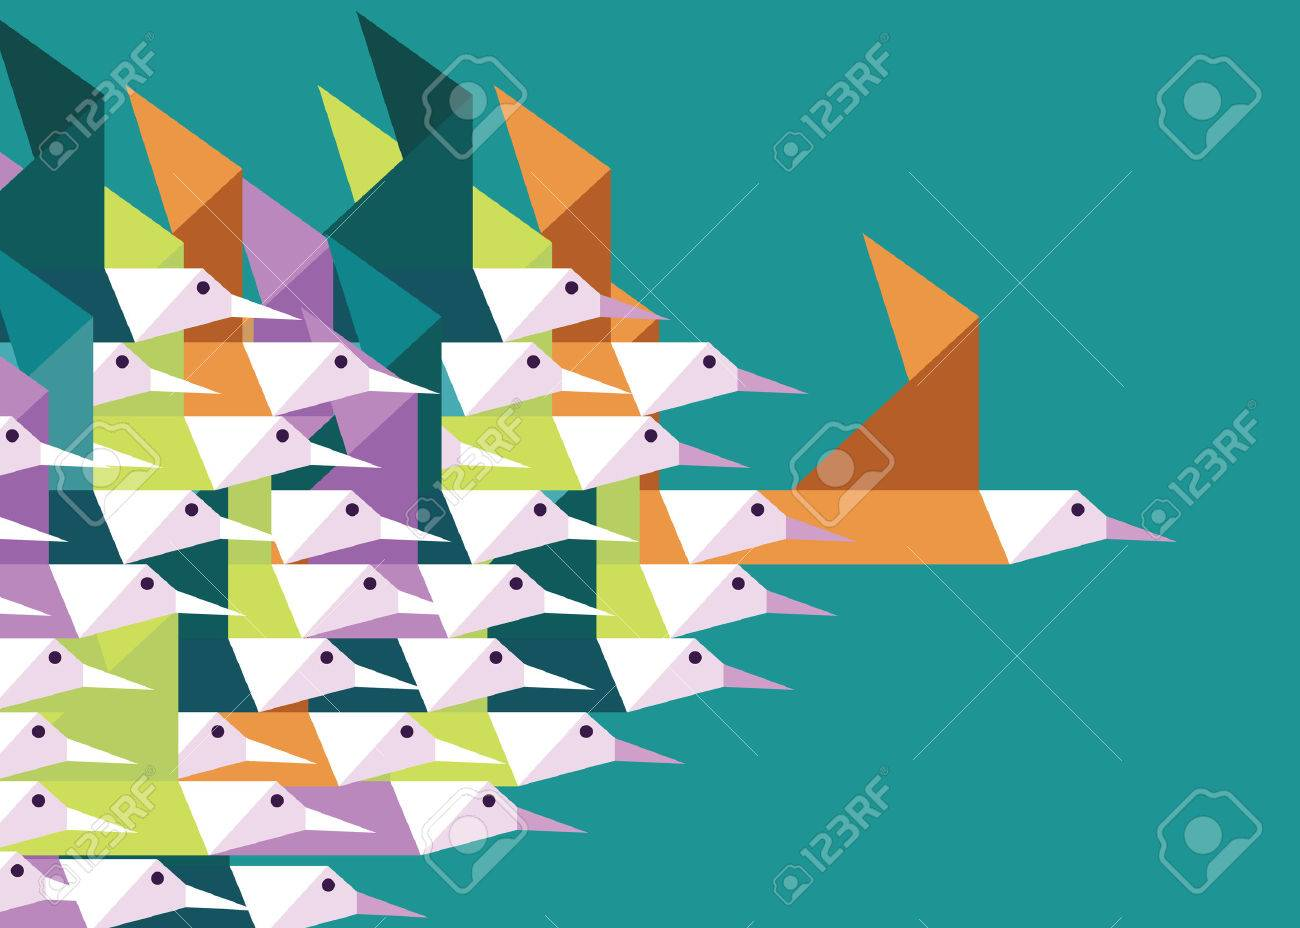 3 495 team lead stock vector illustration and royalty team team lead geometric group of birds leadership and competition concept flat vector illustration